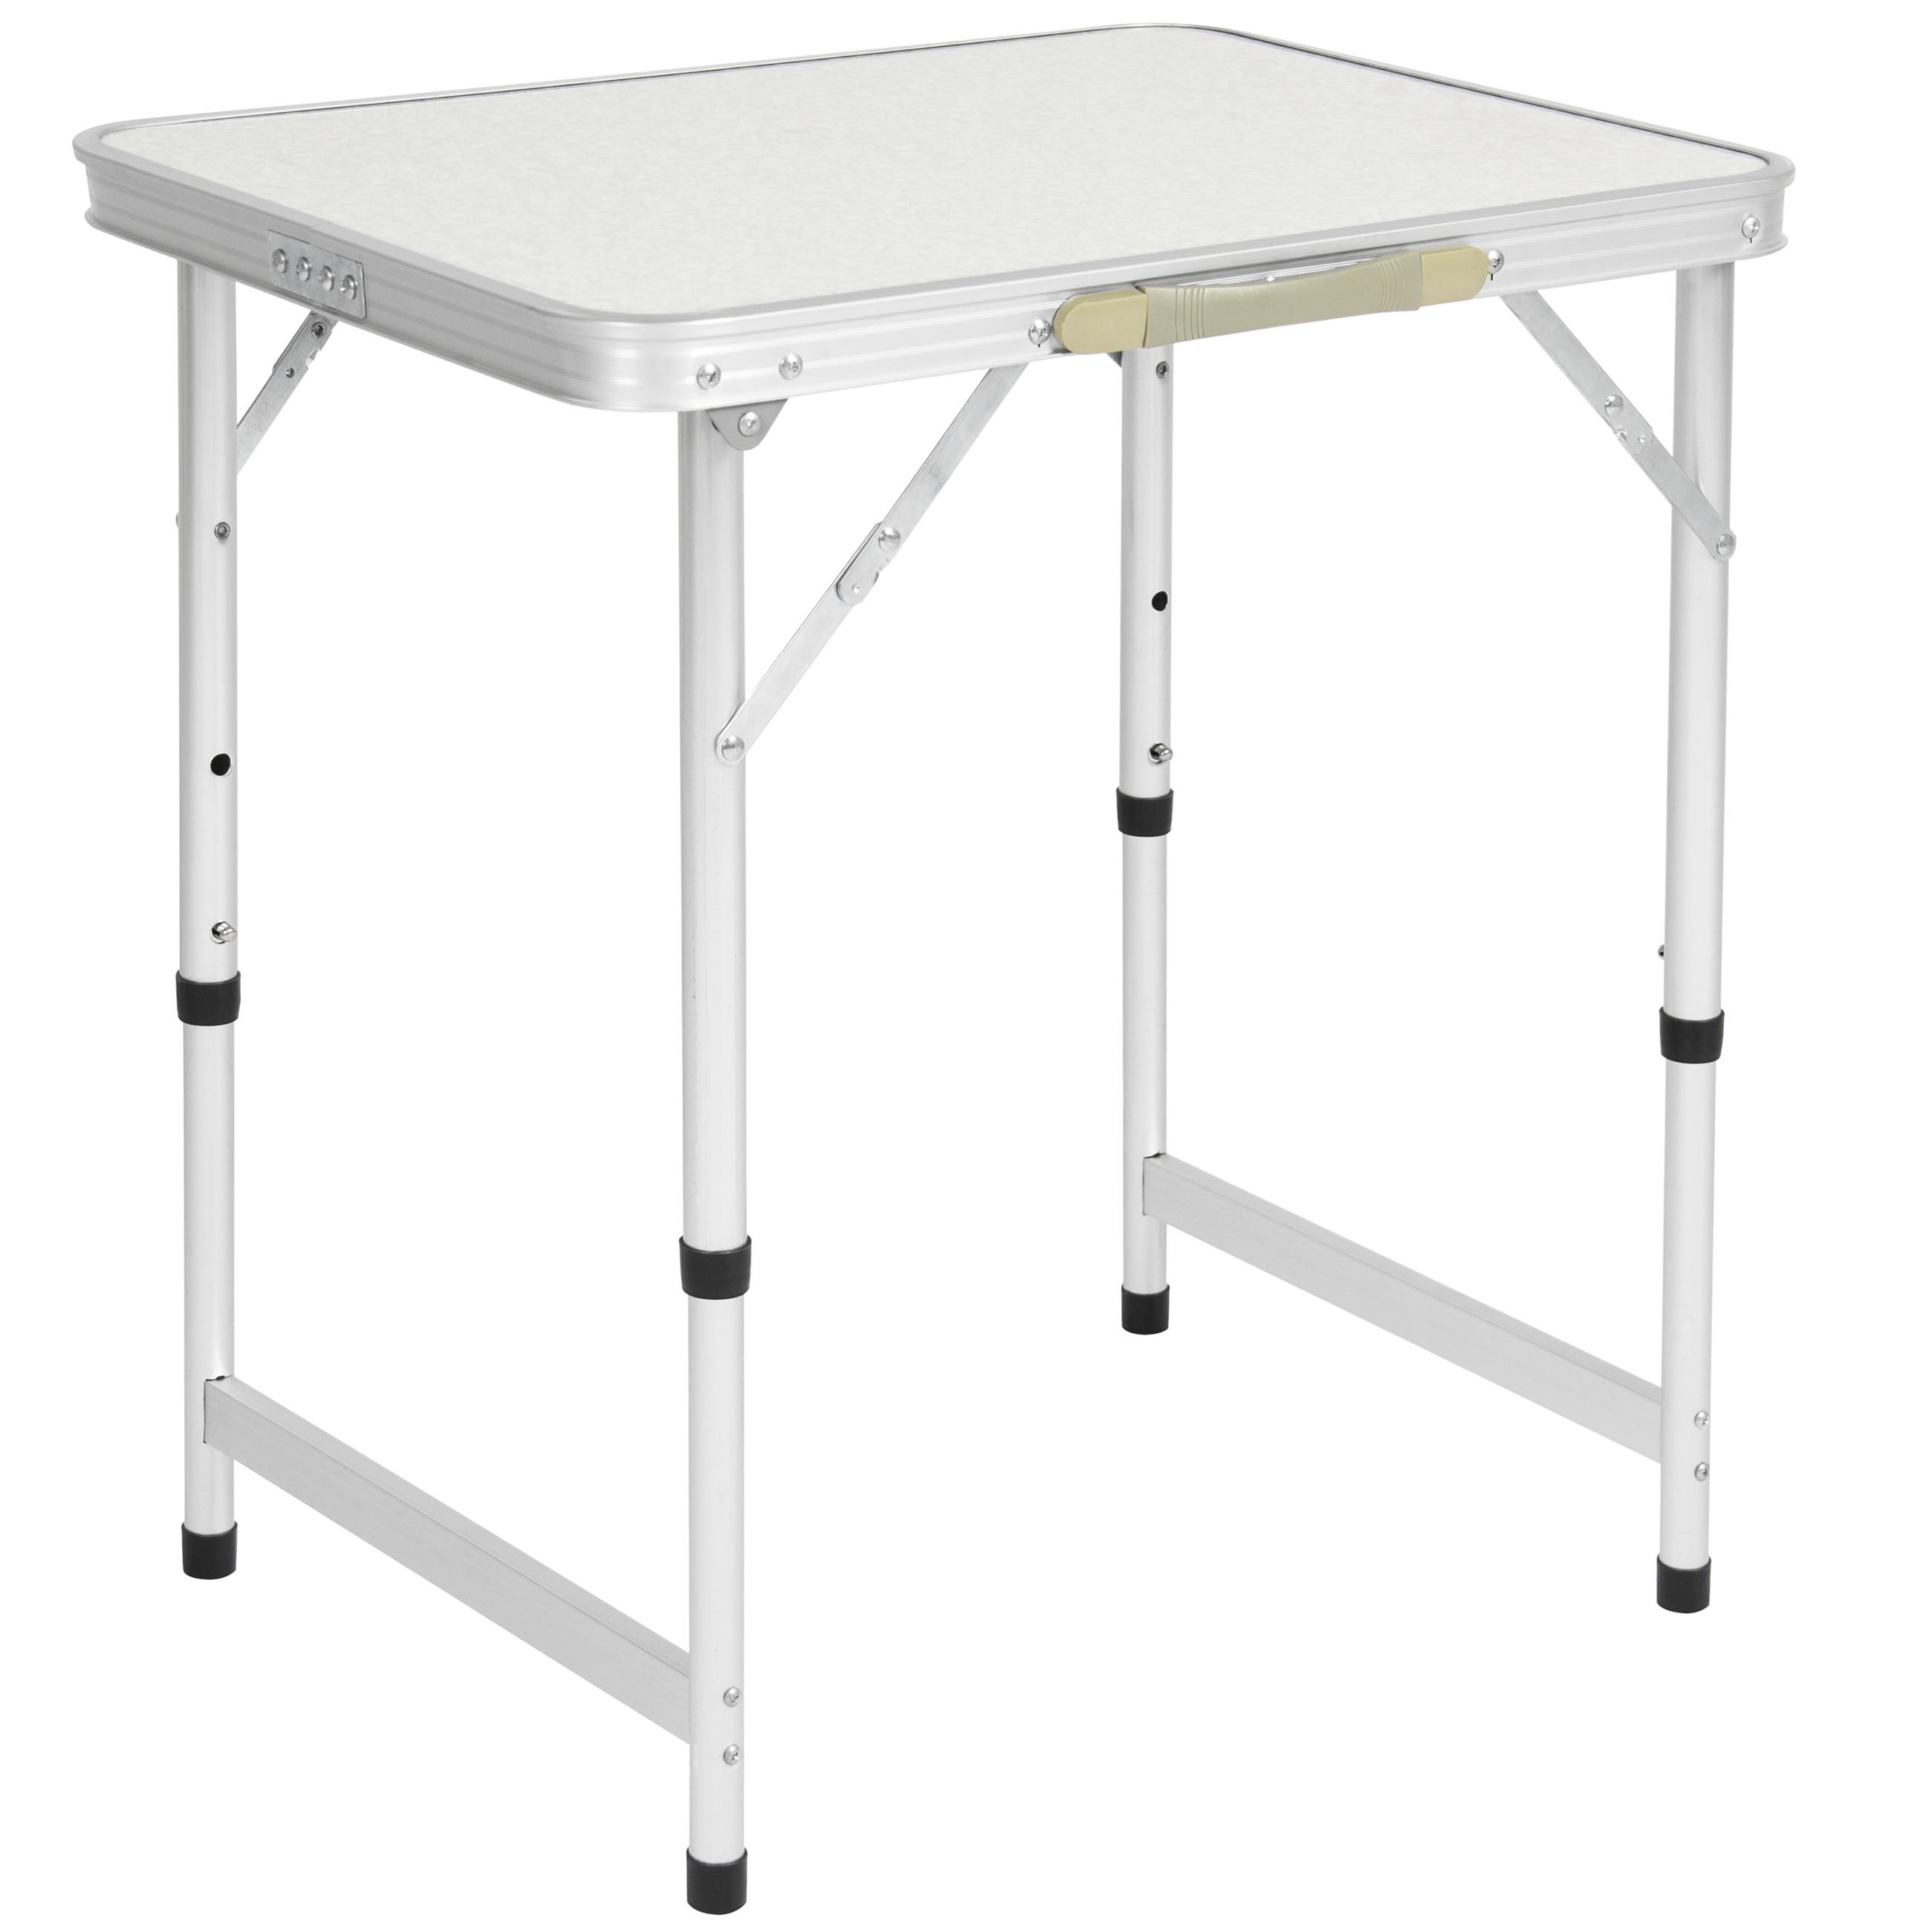 "Best Choice Products BCP Aluminum Camping Picnic Folding Table 23.5"" x 17.5"" Portable Outdoor by"